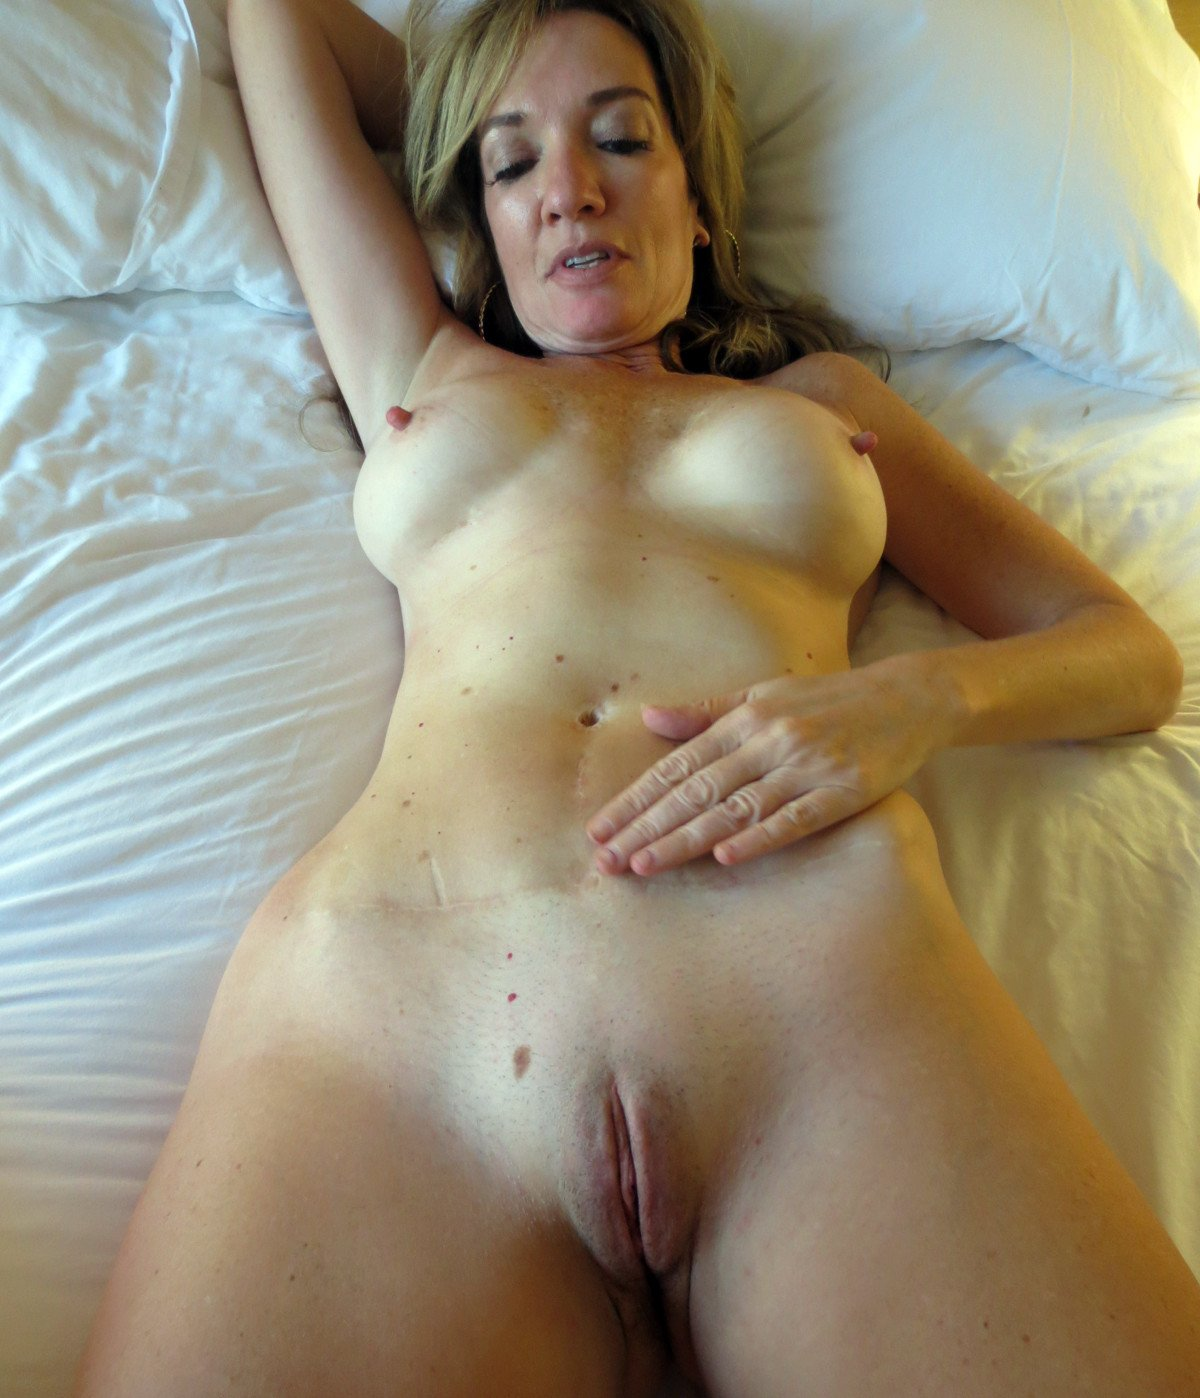 Real amateur wives submitted nudes